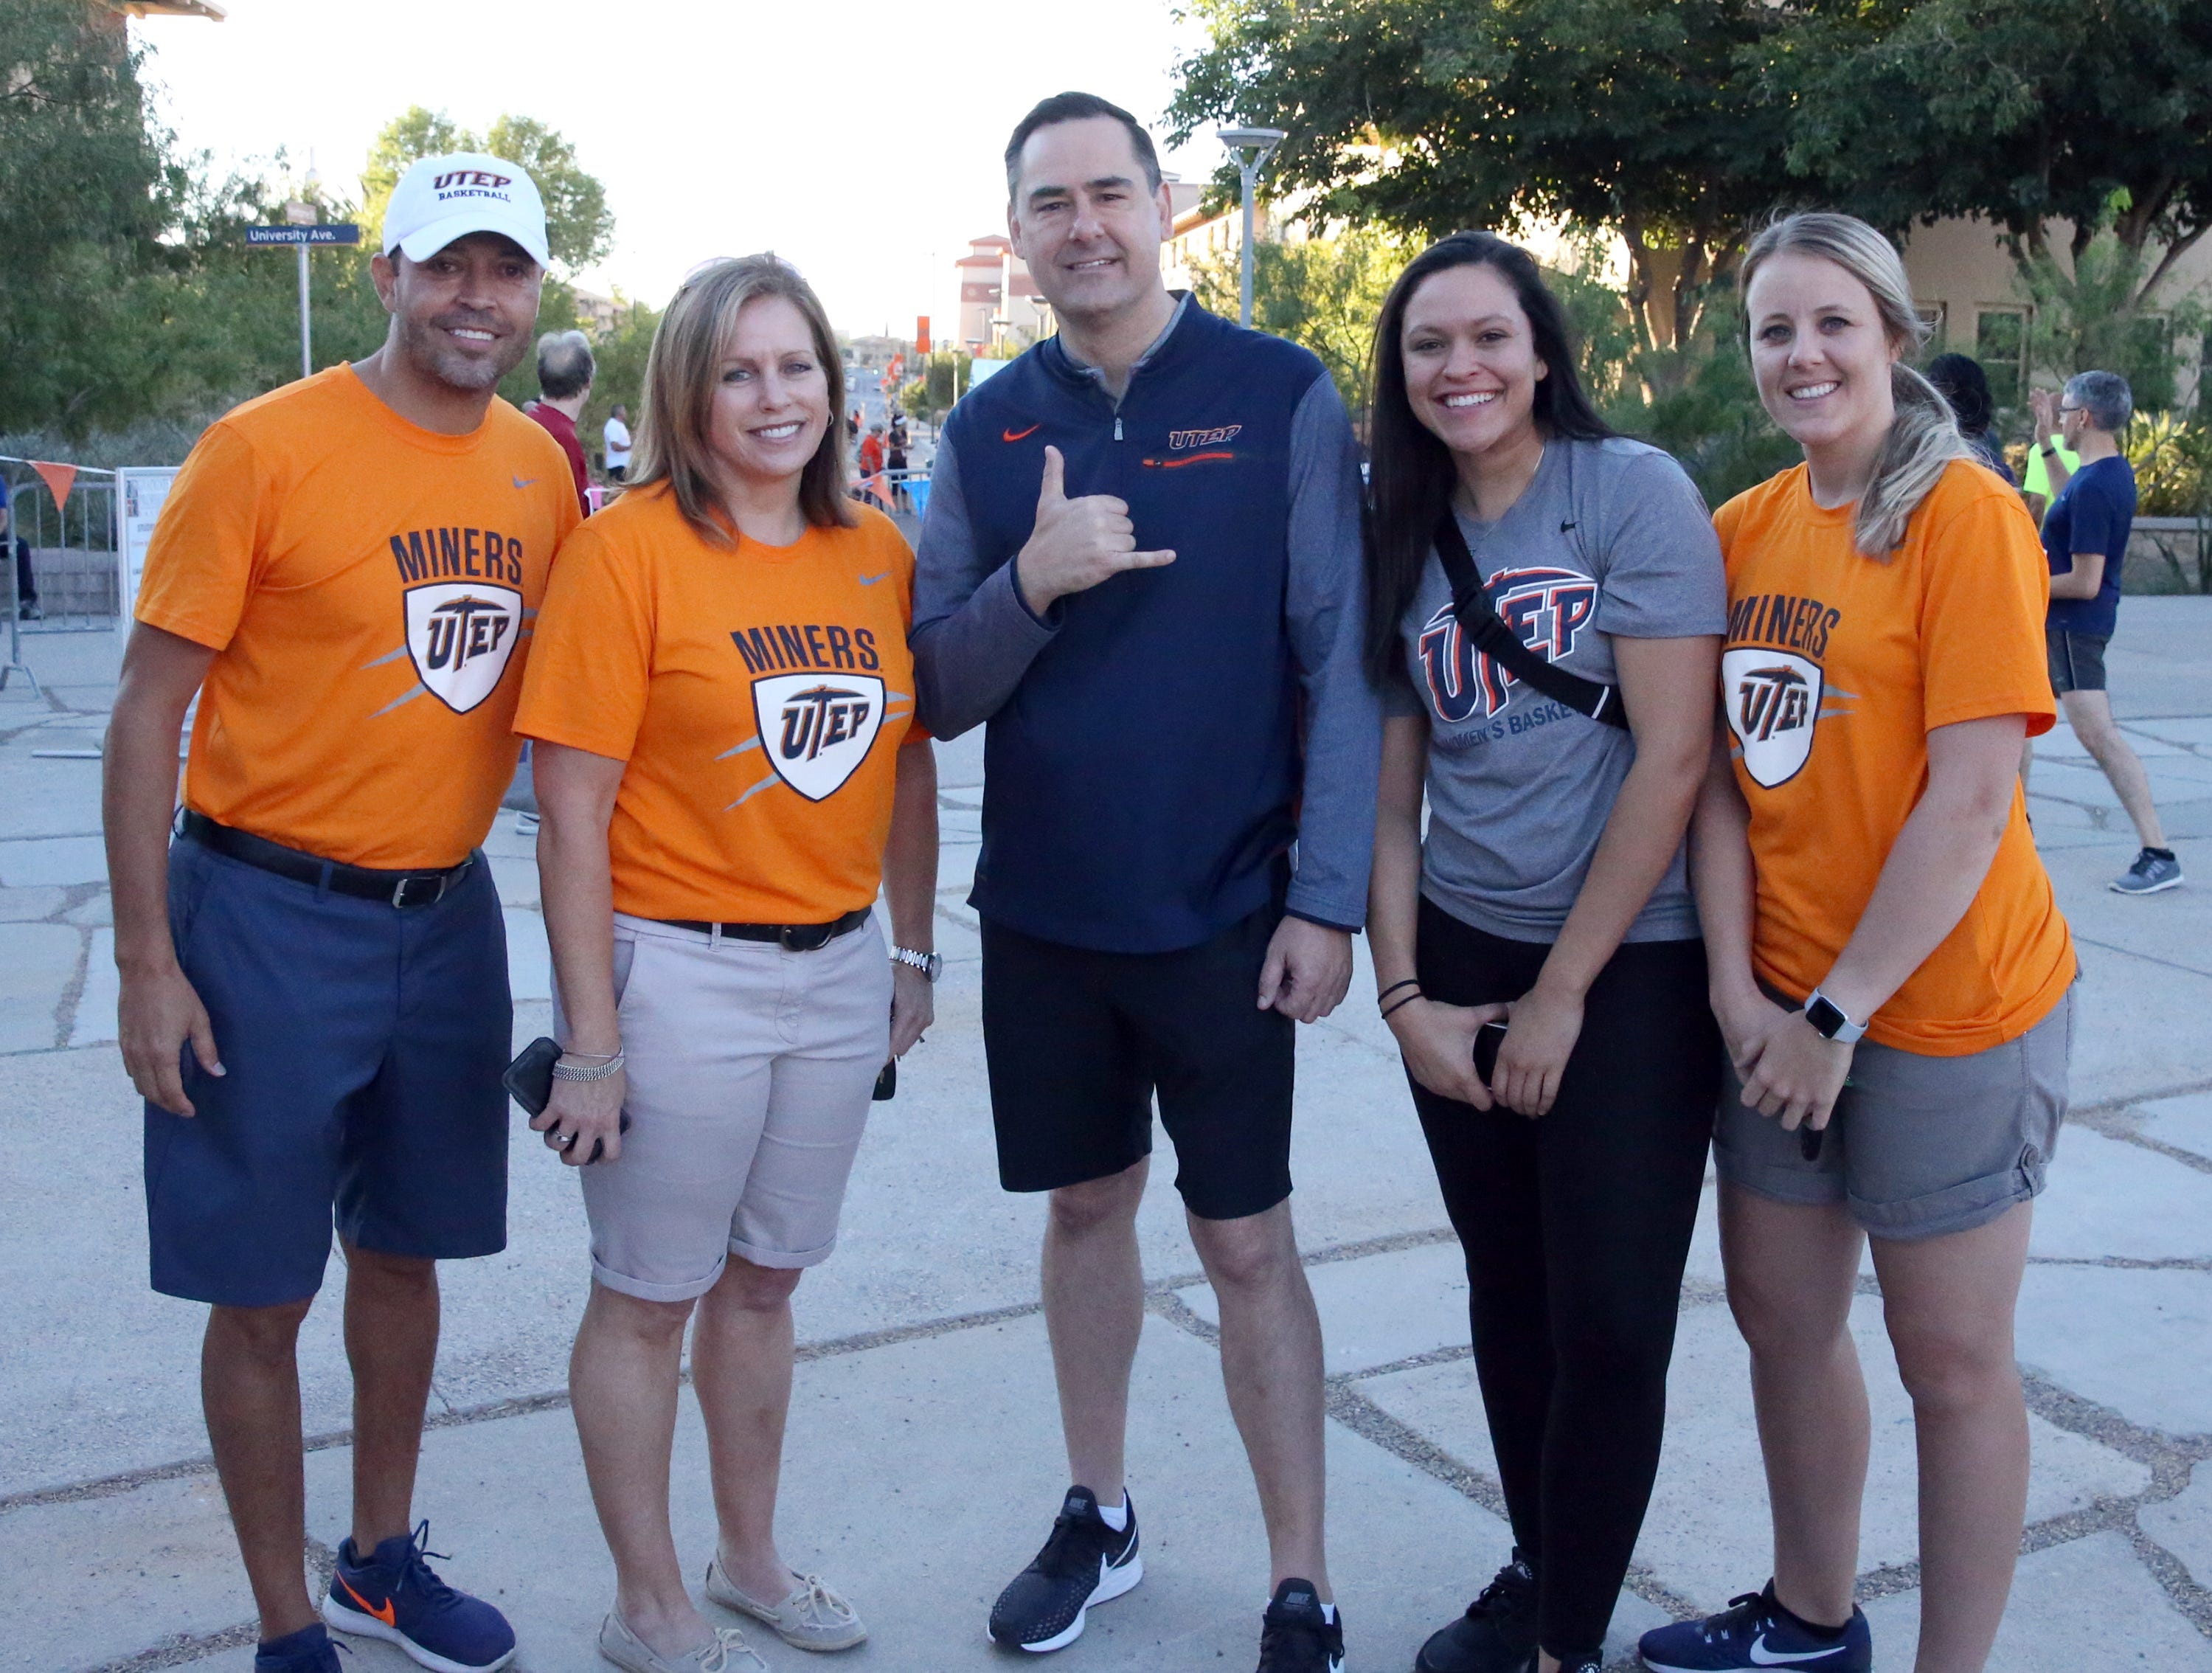 UTEP women's basketball coaches were on hand to lend support at the 9th Miner Dash & Family Fiesta Sunday at Centennial Plaza on the UTEP campus. They are from left: Michael Madrid, Lori Morris, head coach Kevin Baker, Lexi Murphy and Kalya Weaver.